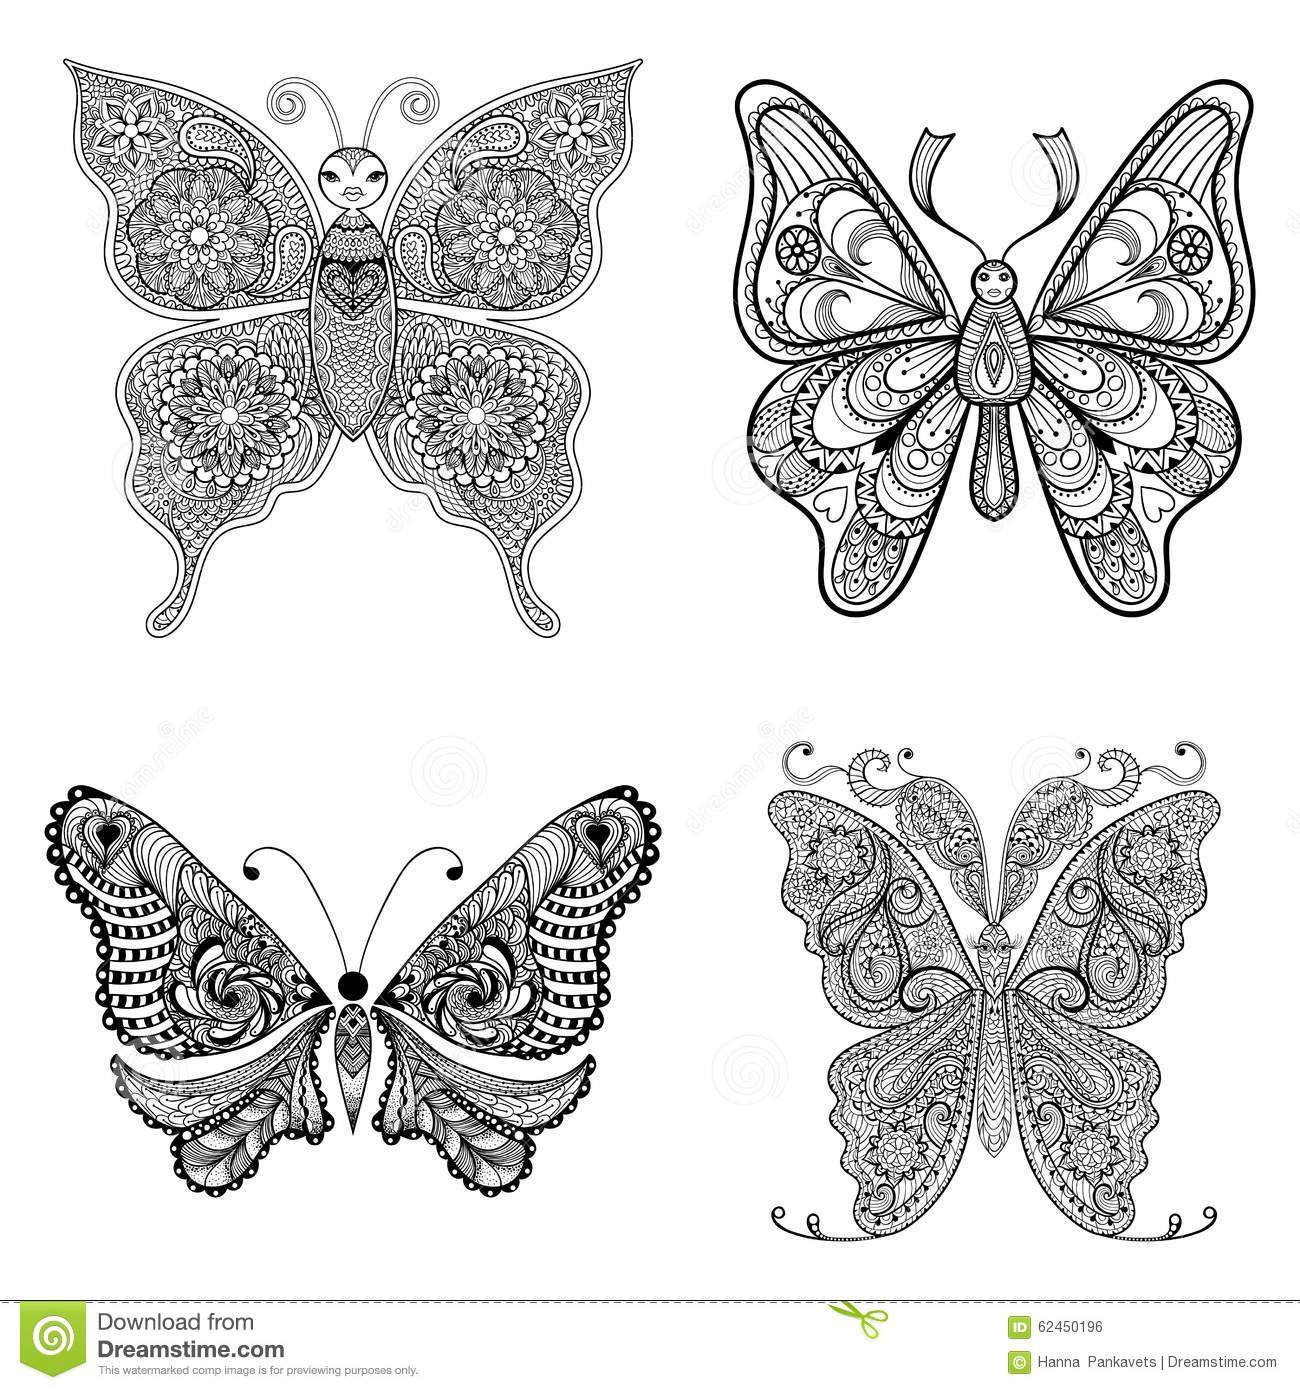 Coloring pages for adults butterflies - Zentangle Vector Black Butterflies Set For Adult Anti Stress Co New Coloring Page